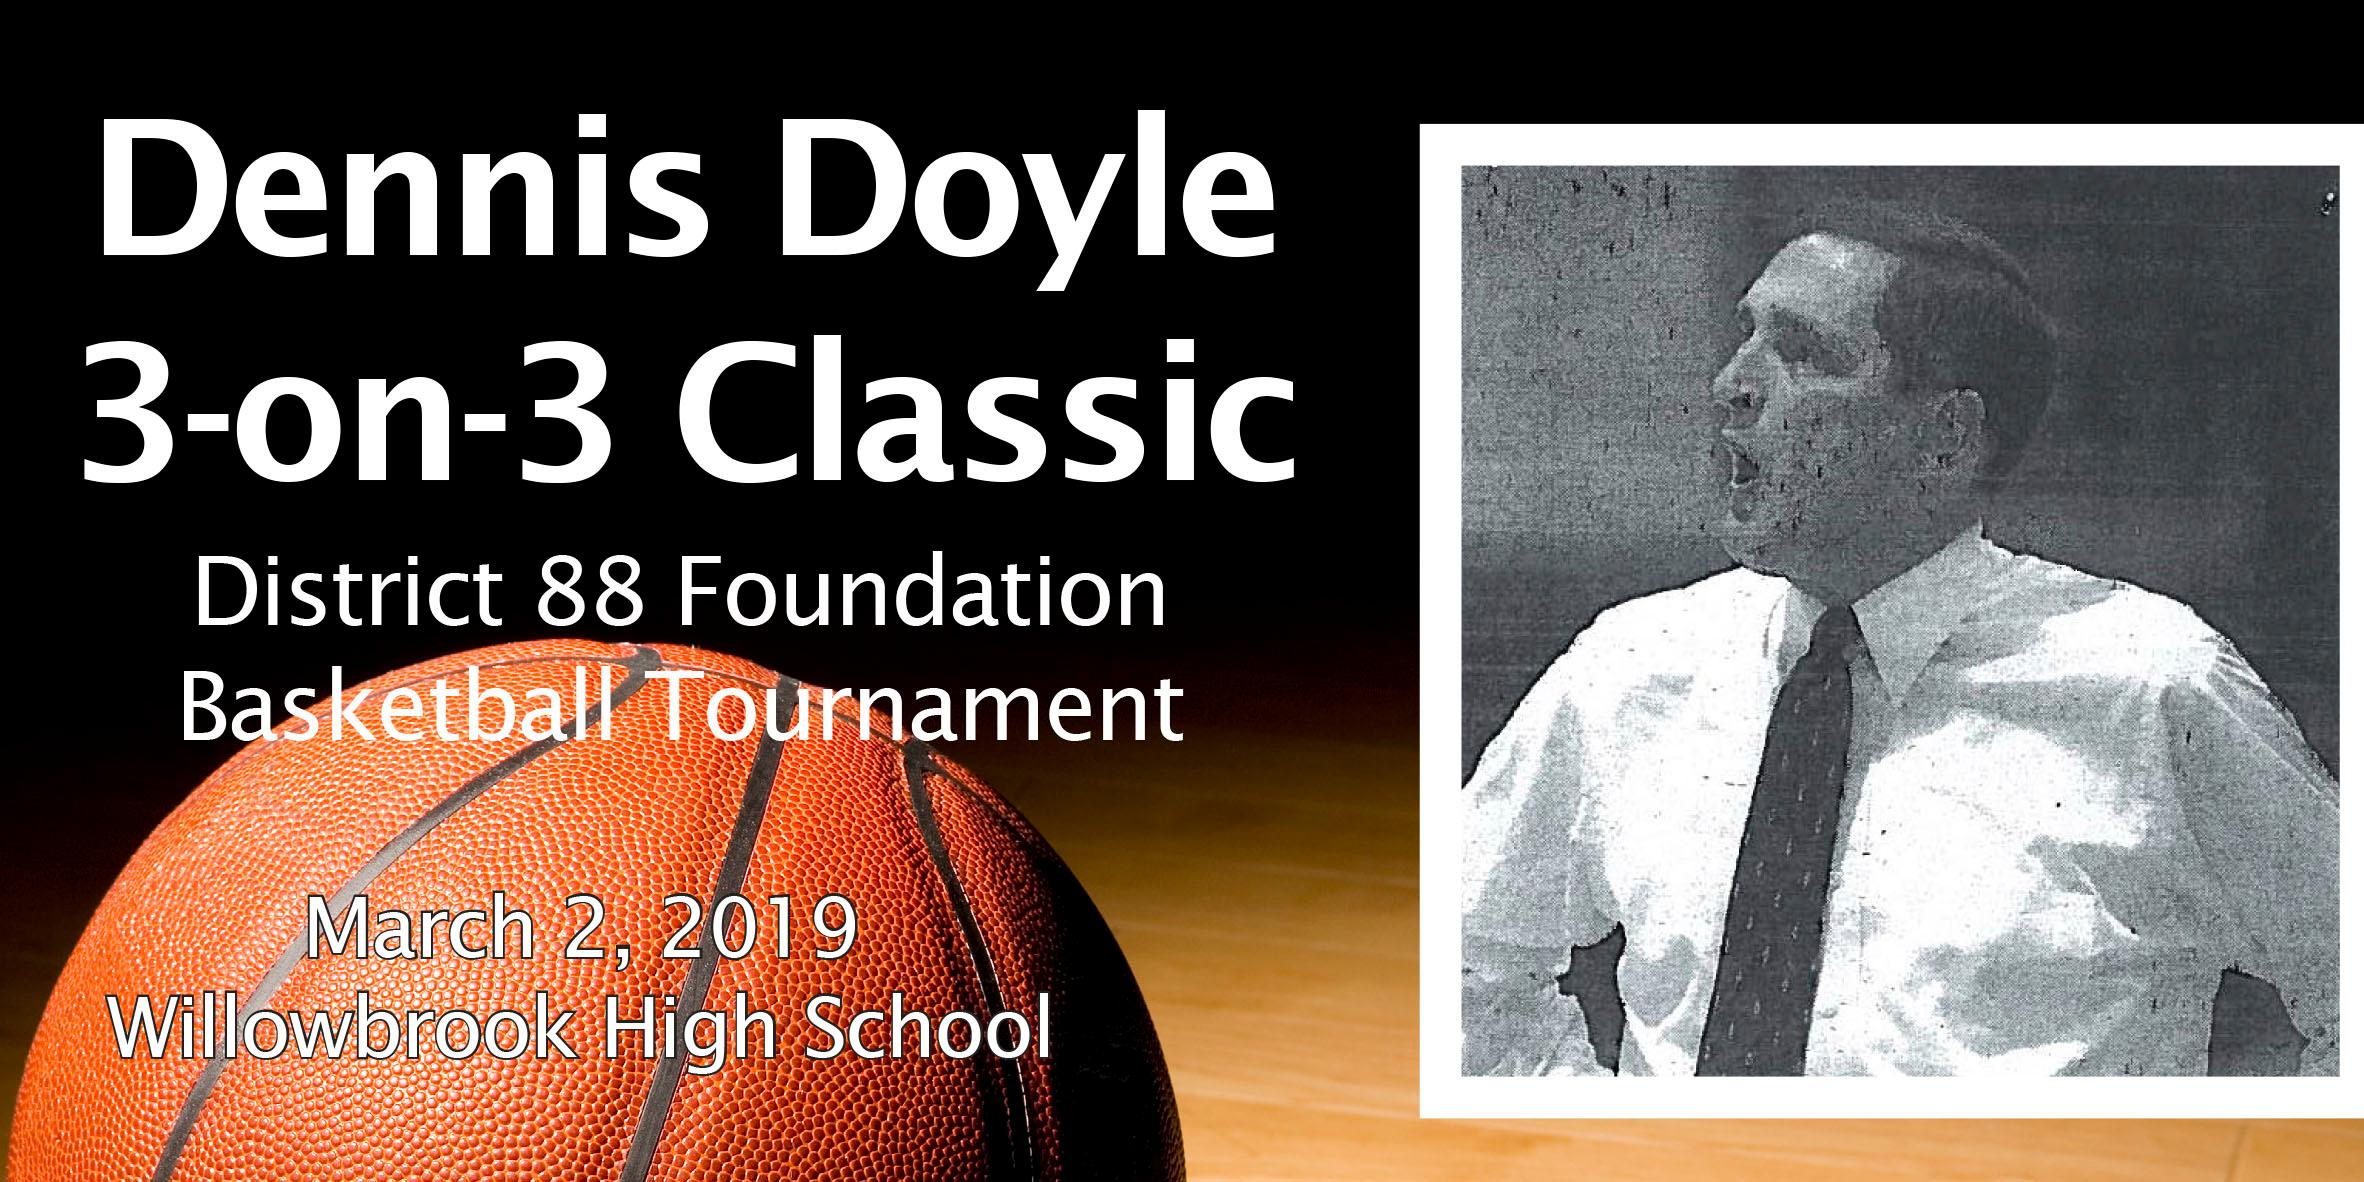 You're invited to participate in the 2019 Dennis Doyle 3-on-3 Classic District 88 Foundation Basketball Tournament